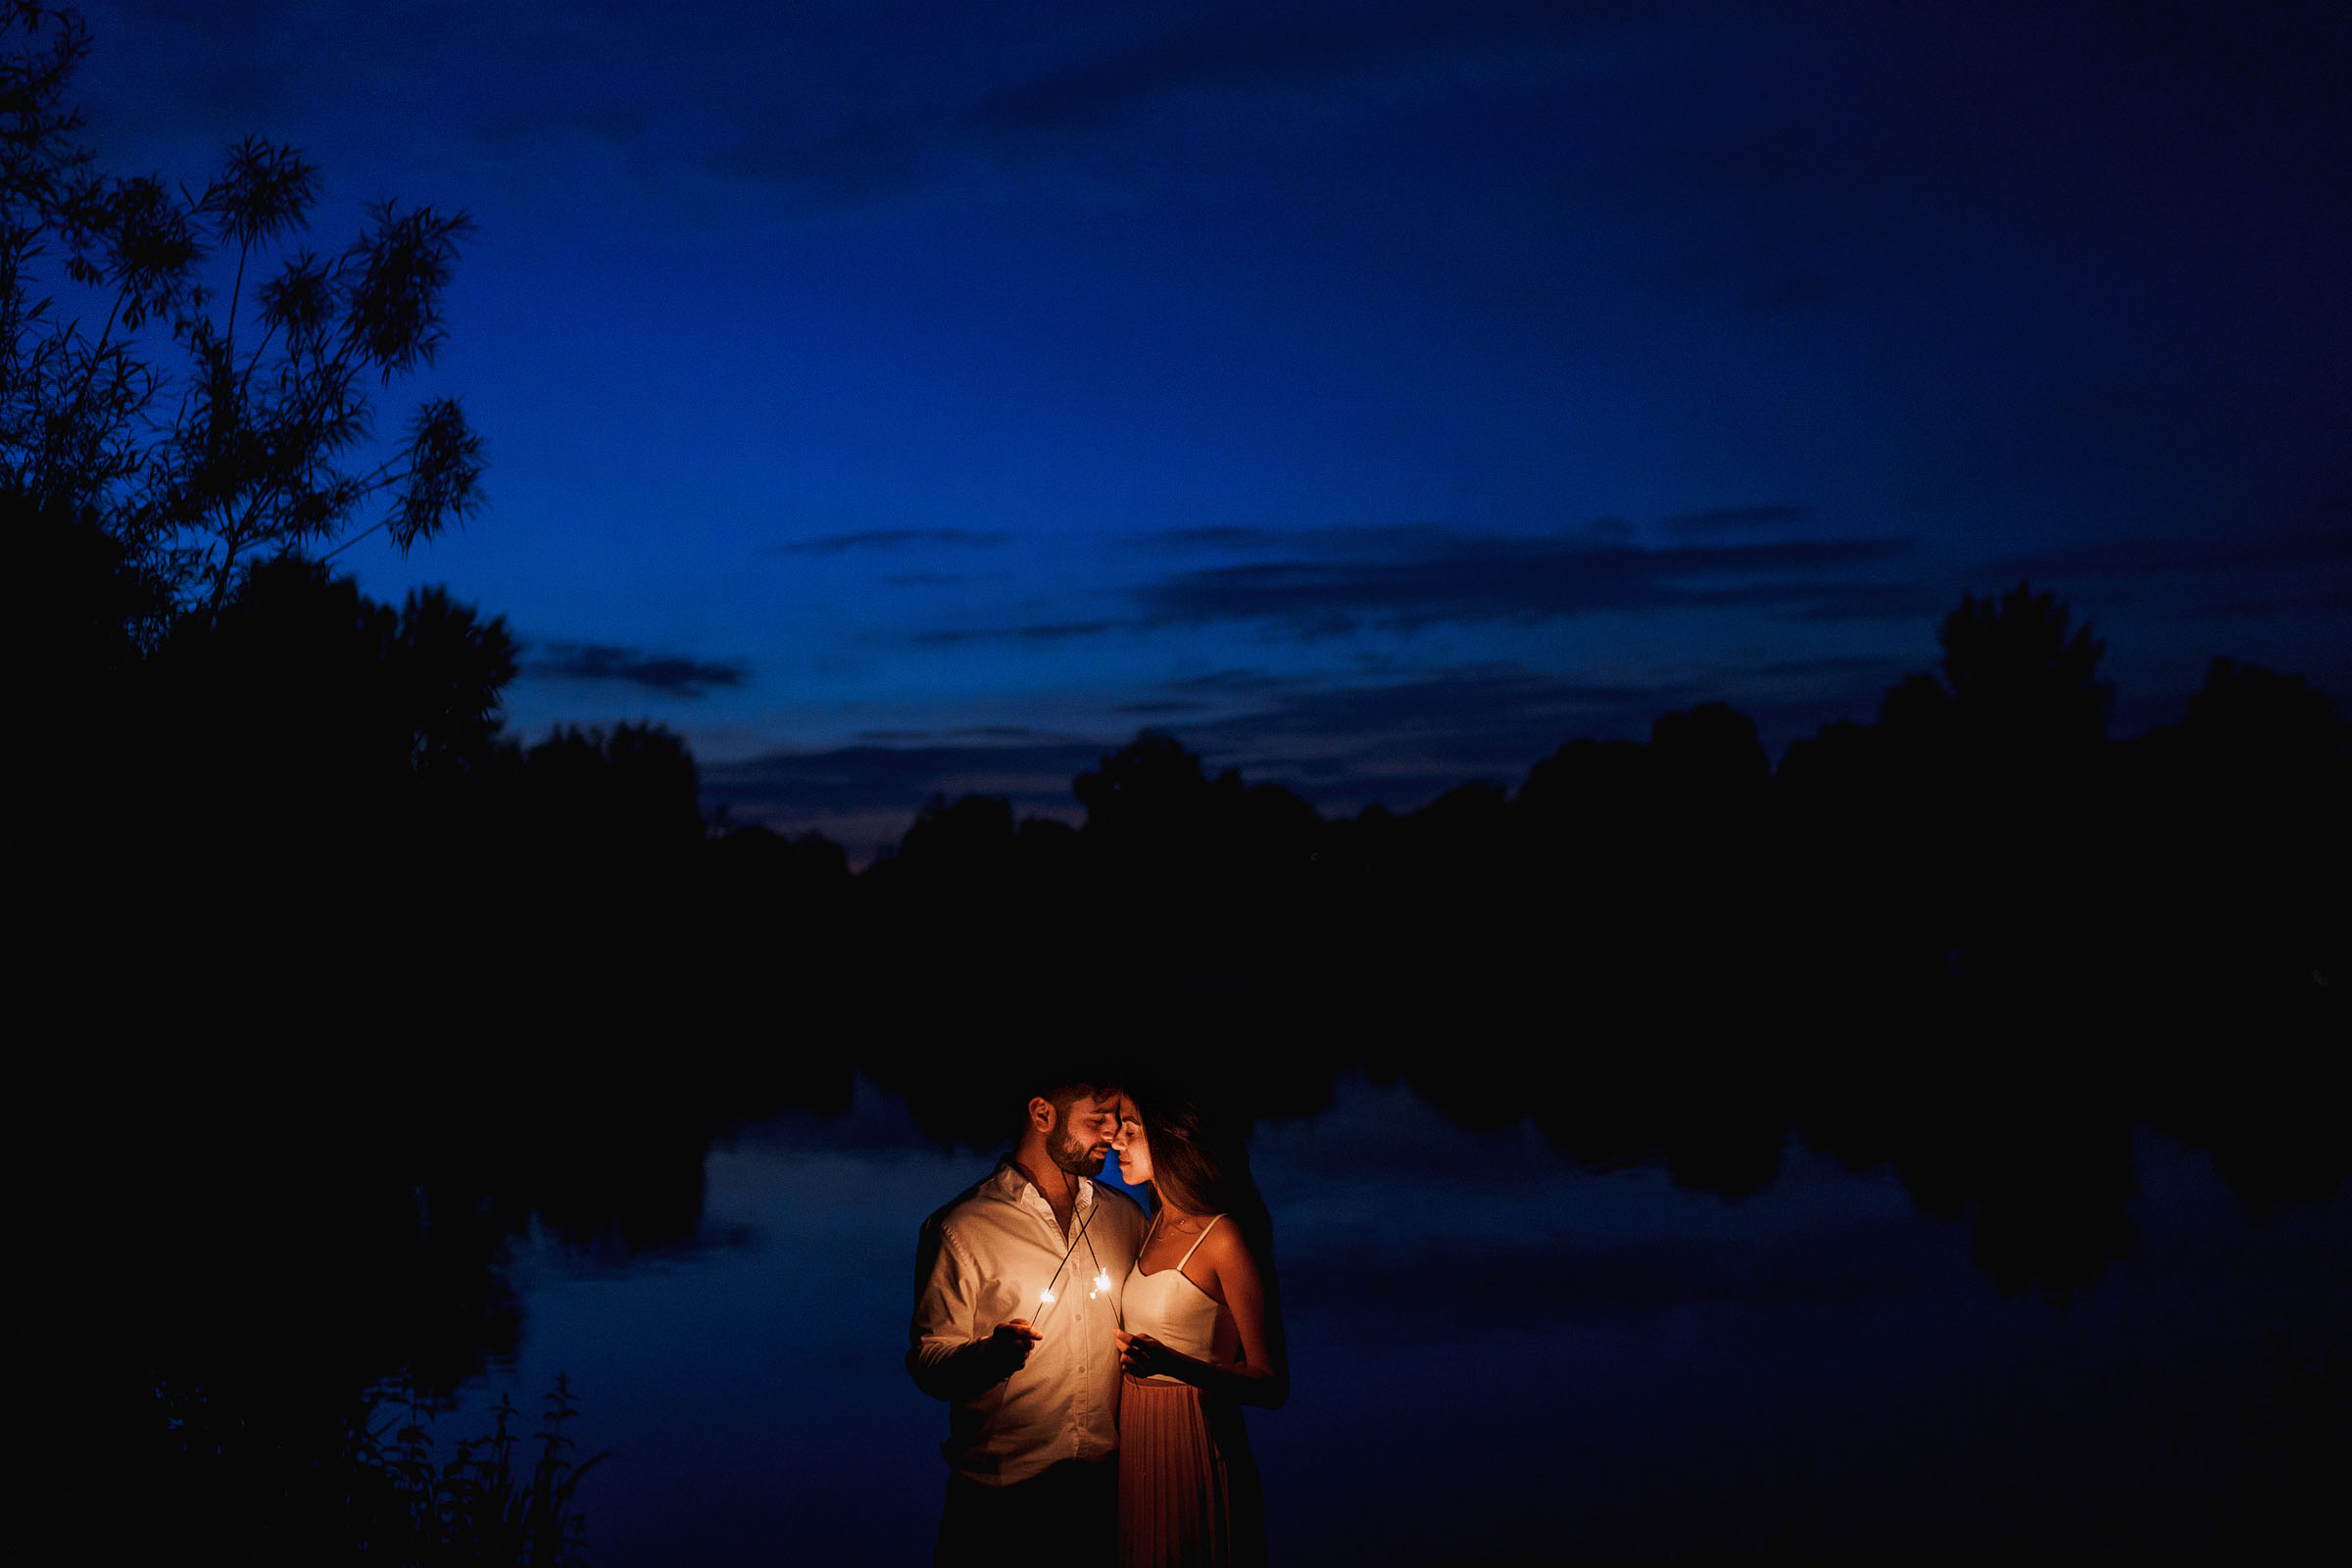 Romantic nighttime couple portrait - Photo by F5 Photography